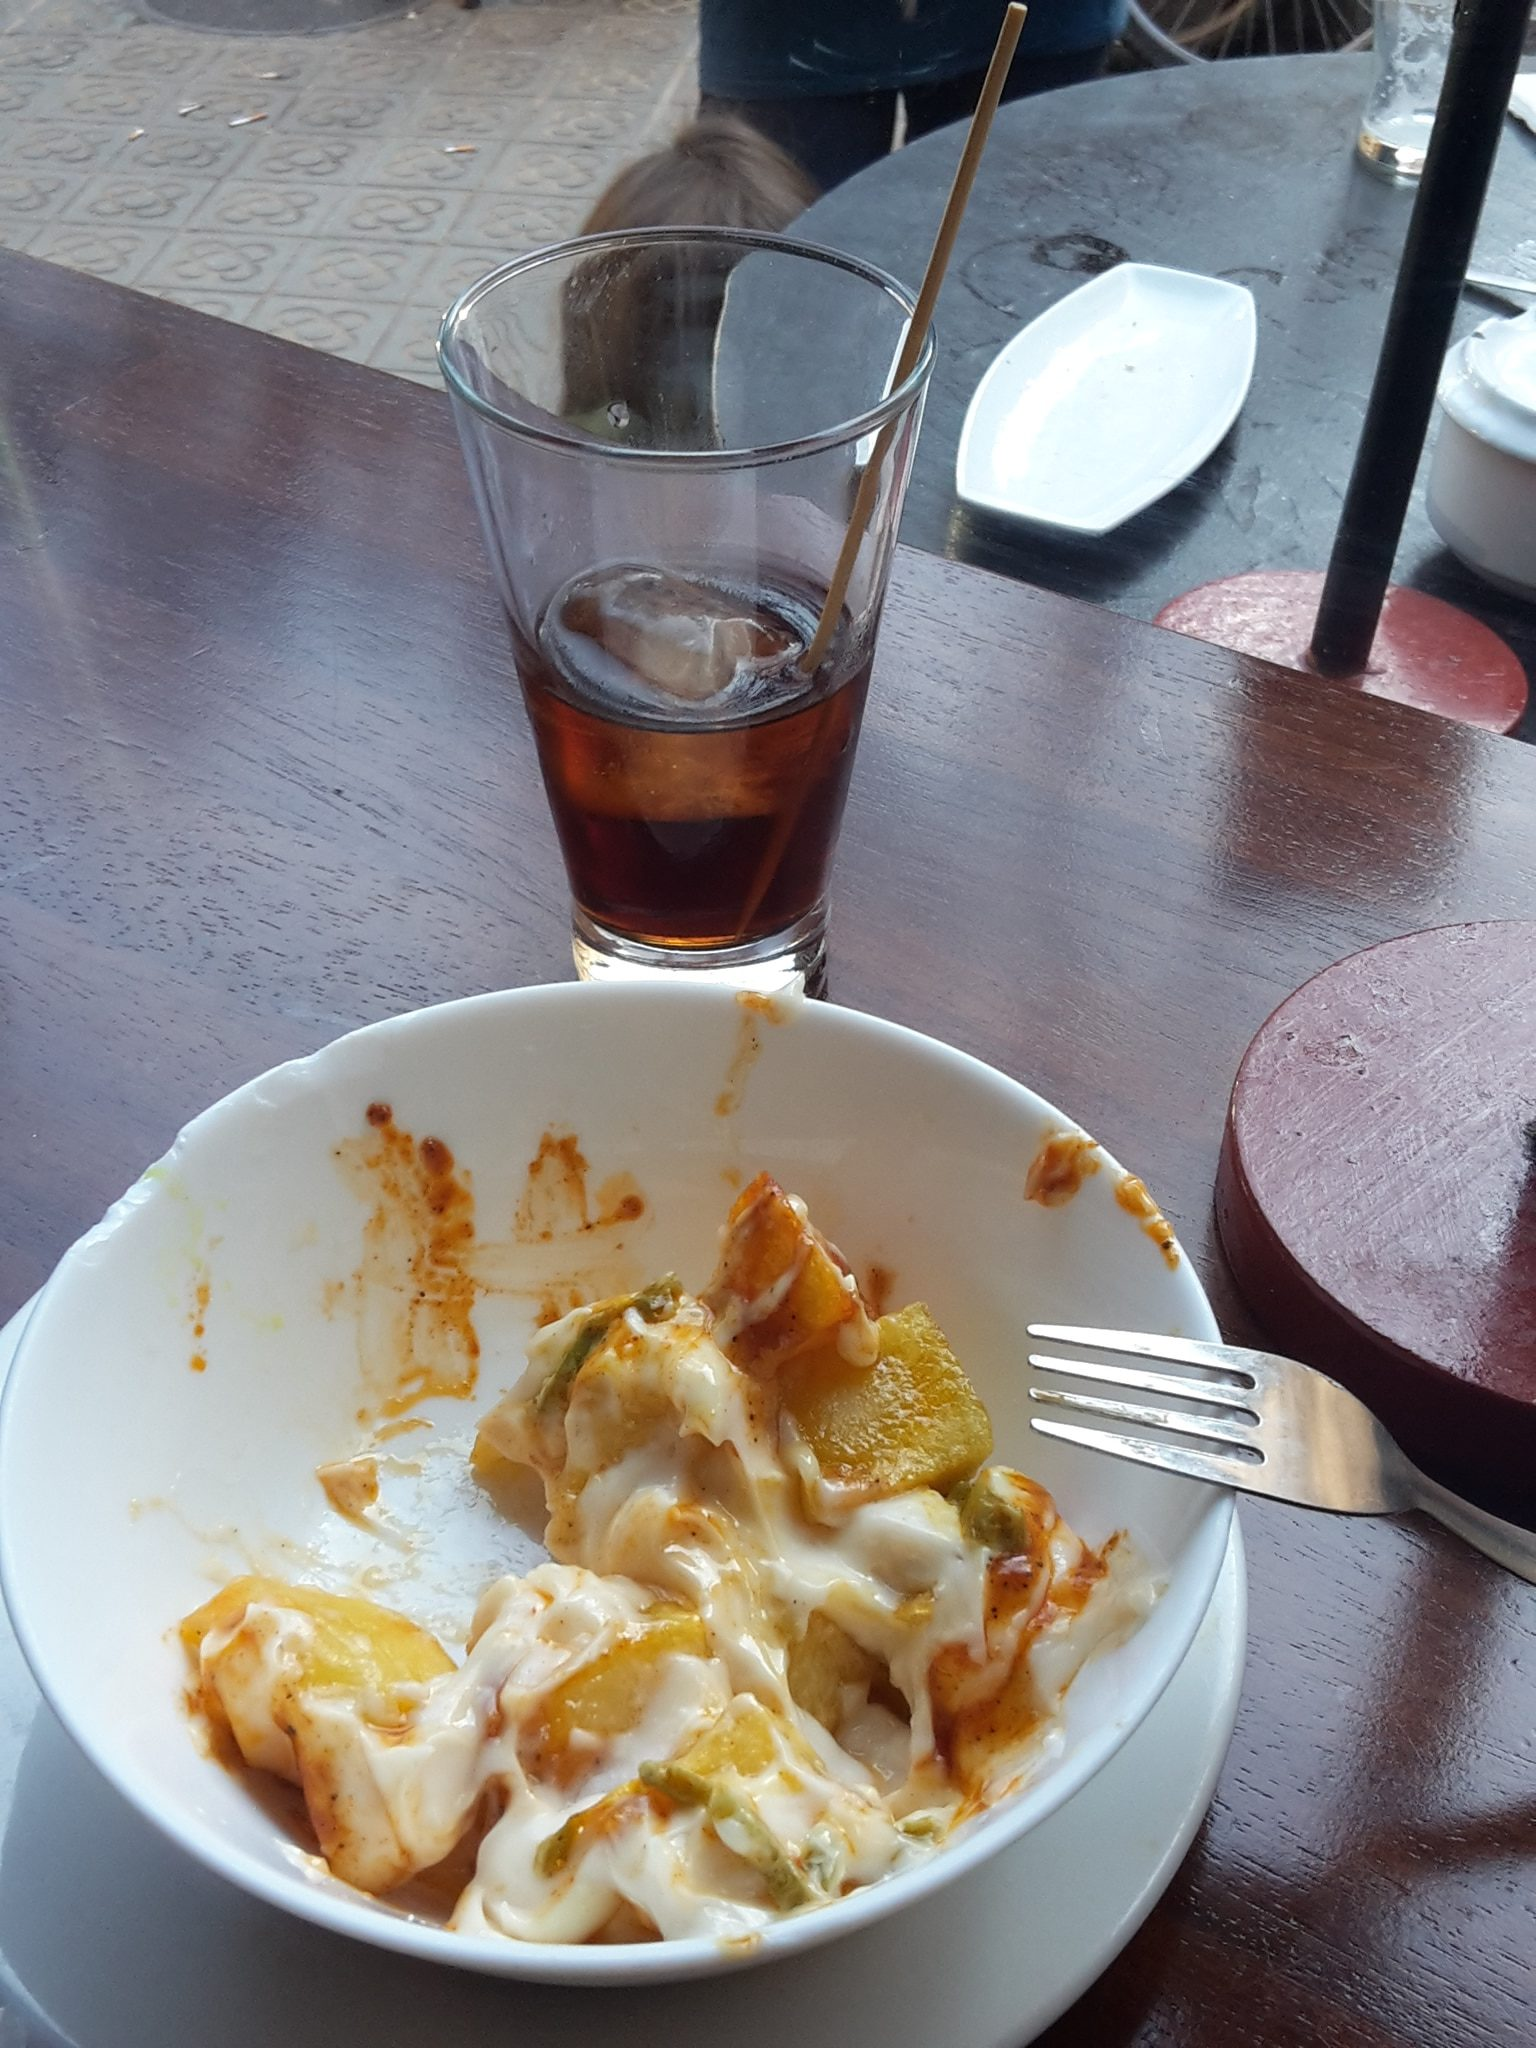 Glass of vermut and half eaten patatas bravas